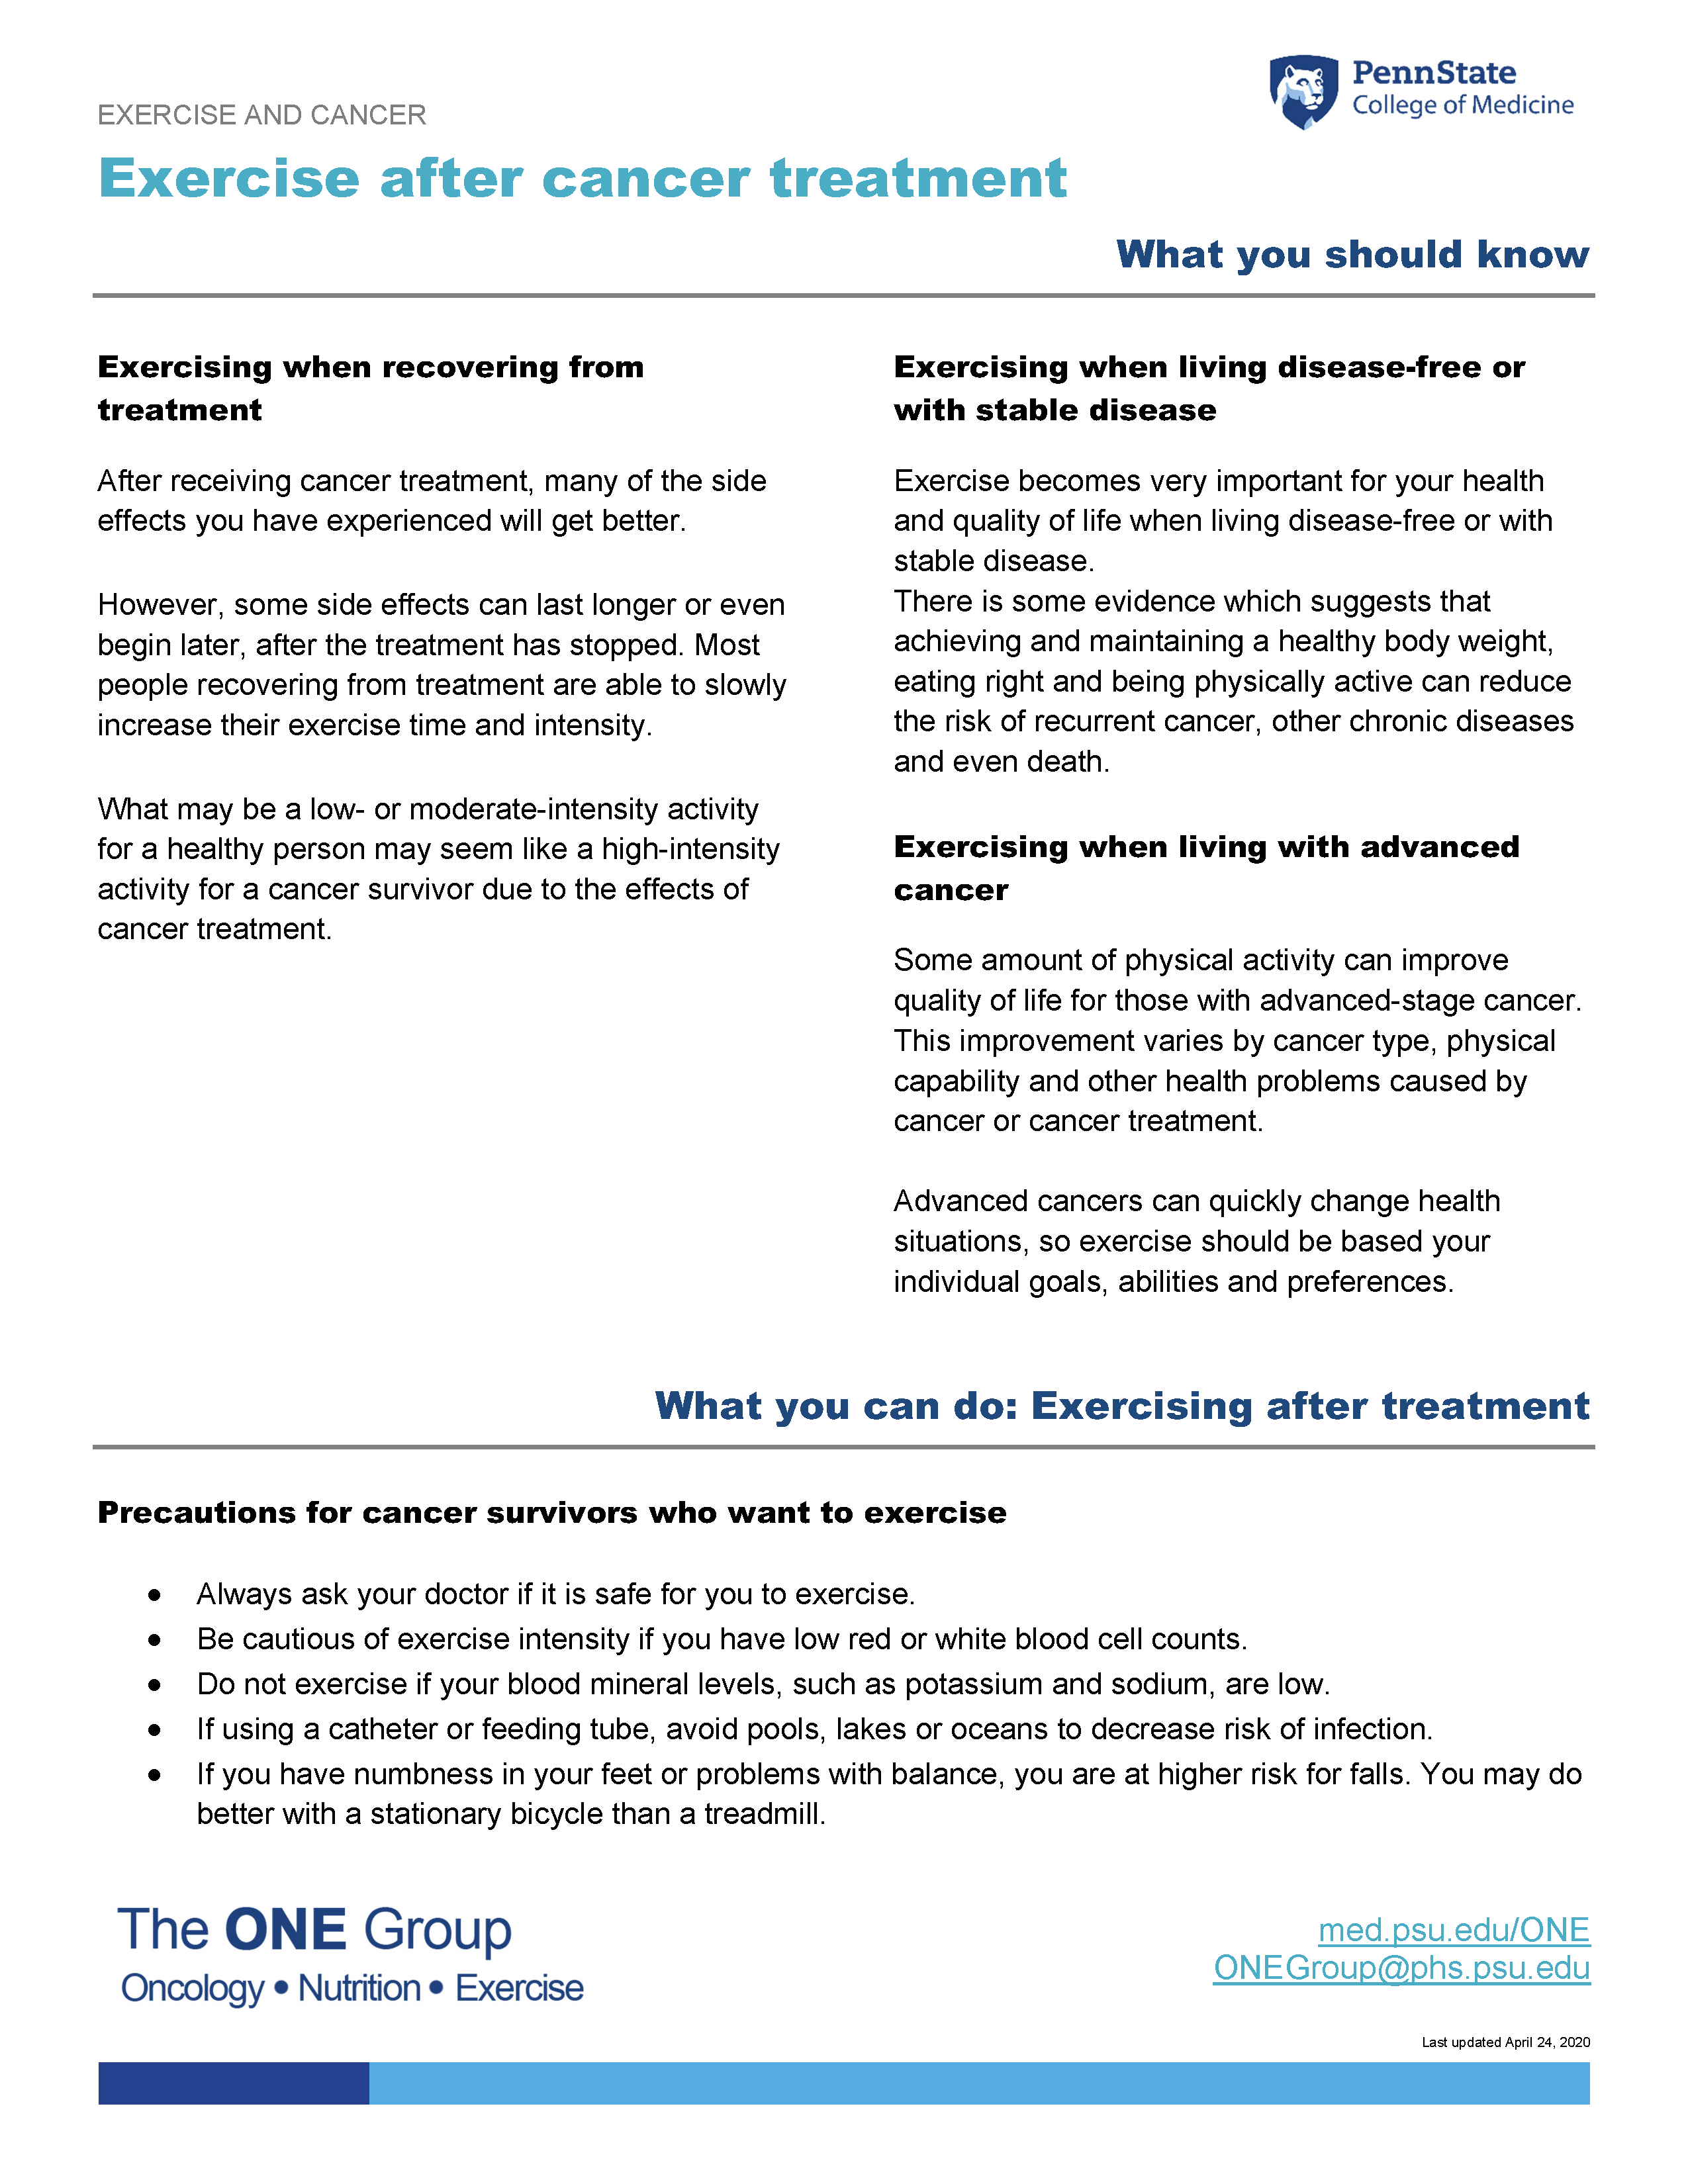 The exercise after cancer treatment guide from The ONE Group includes the information on this page, formatted for print.